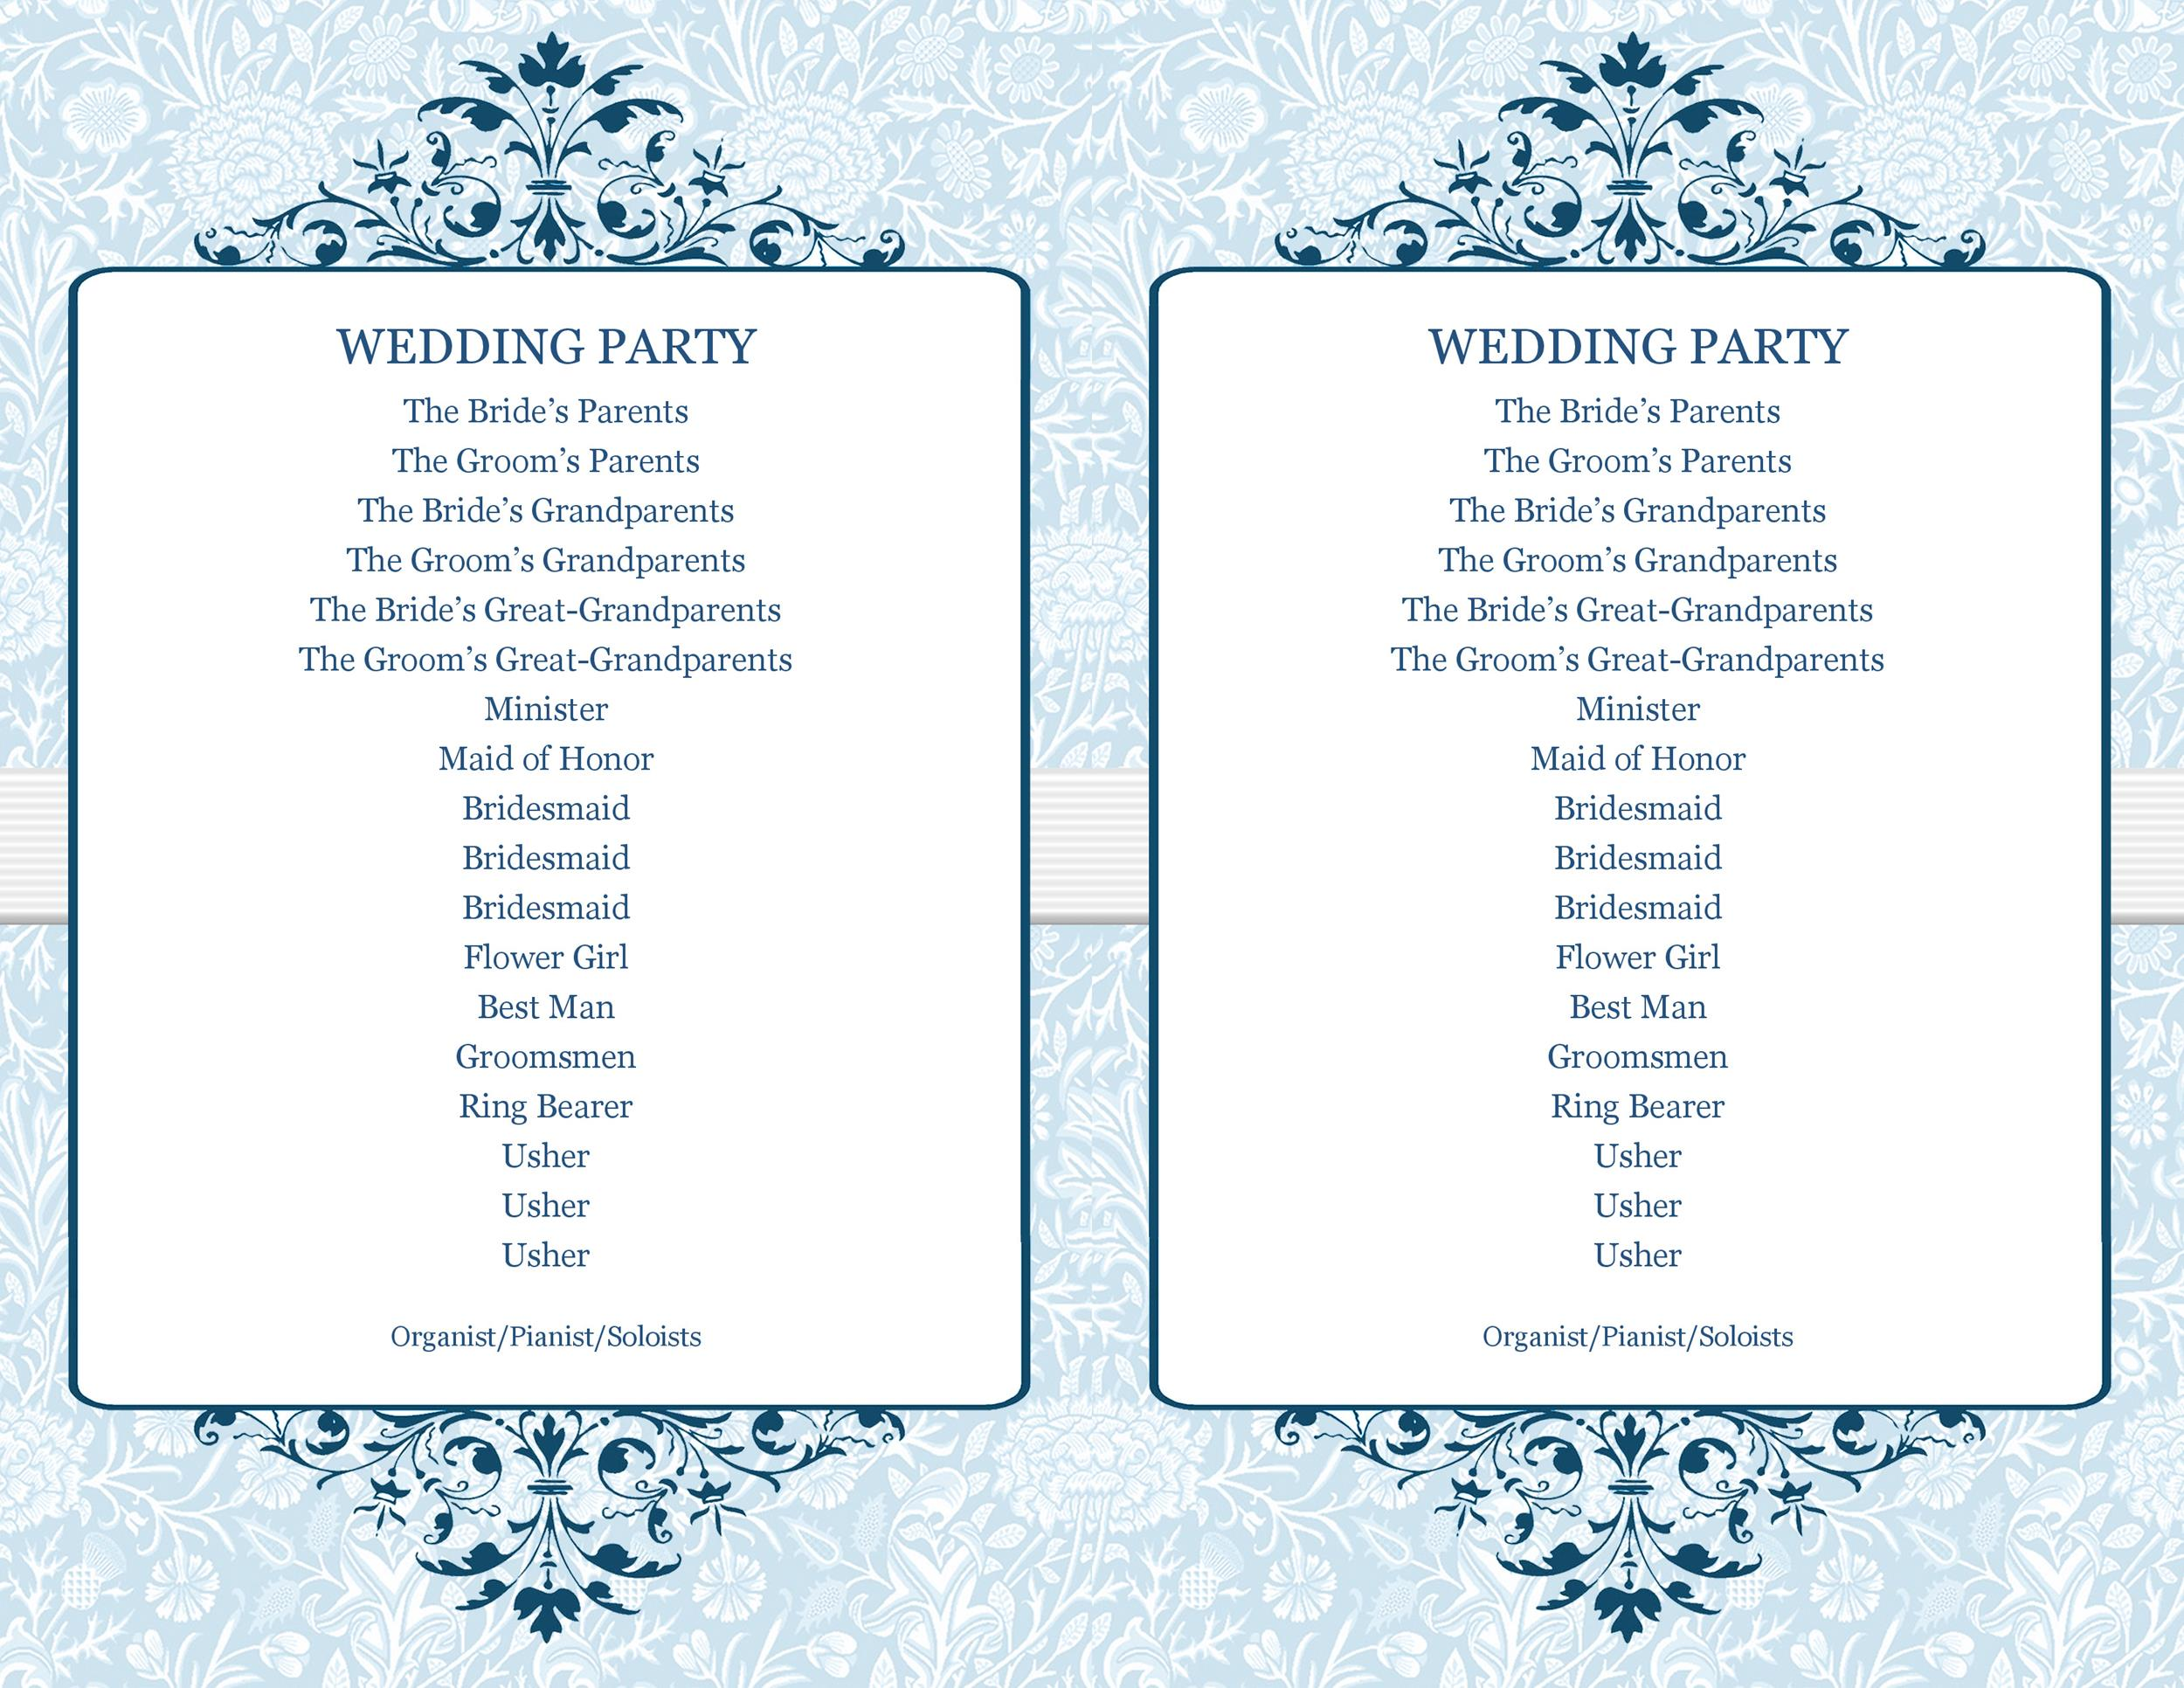 Wedding Program Example.37 Printable Wedding Program Examples Templates ᐅ